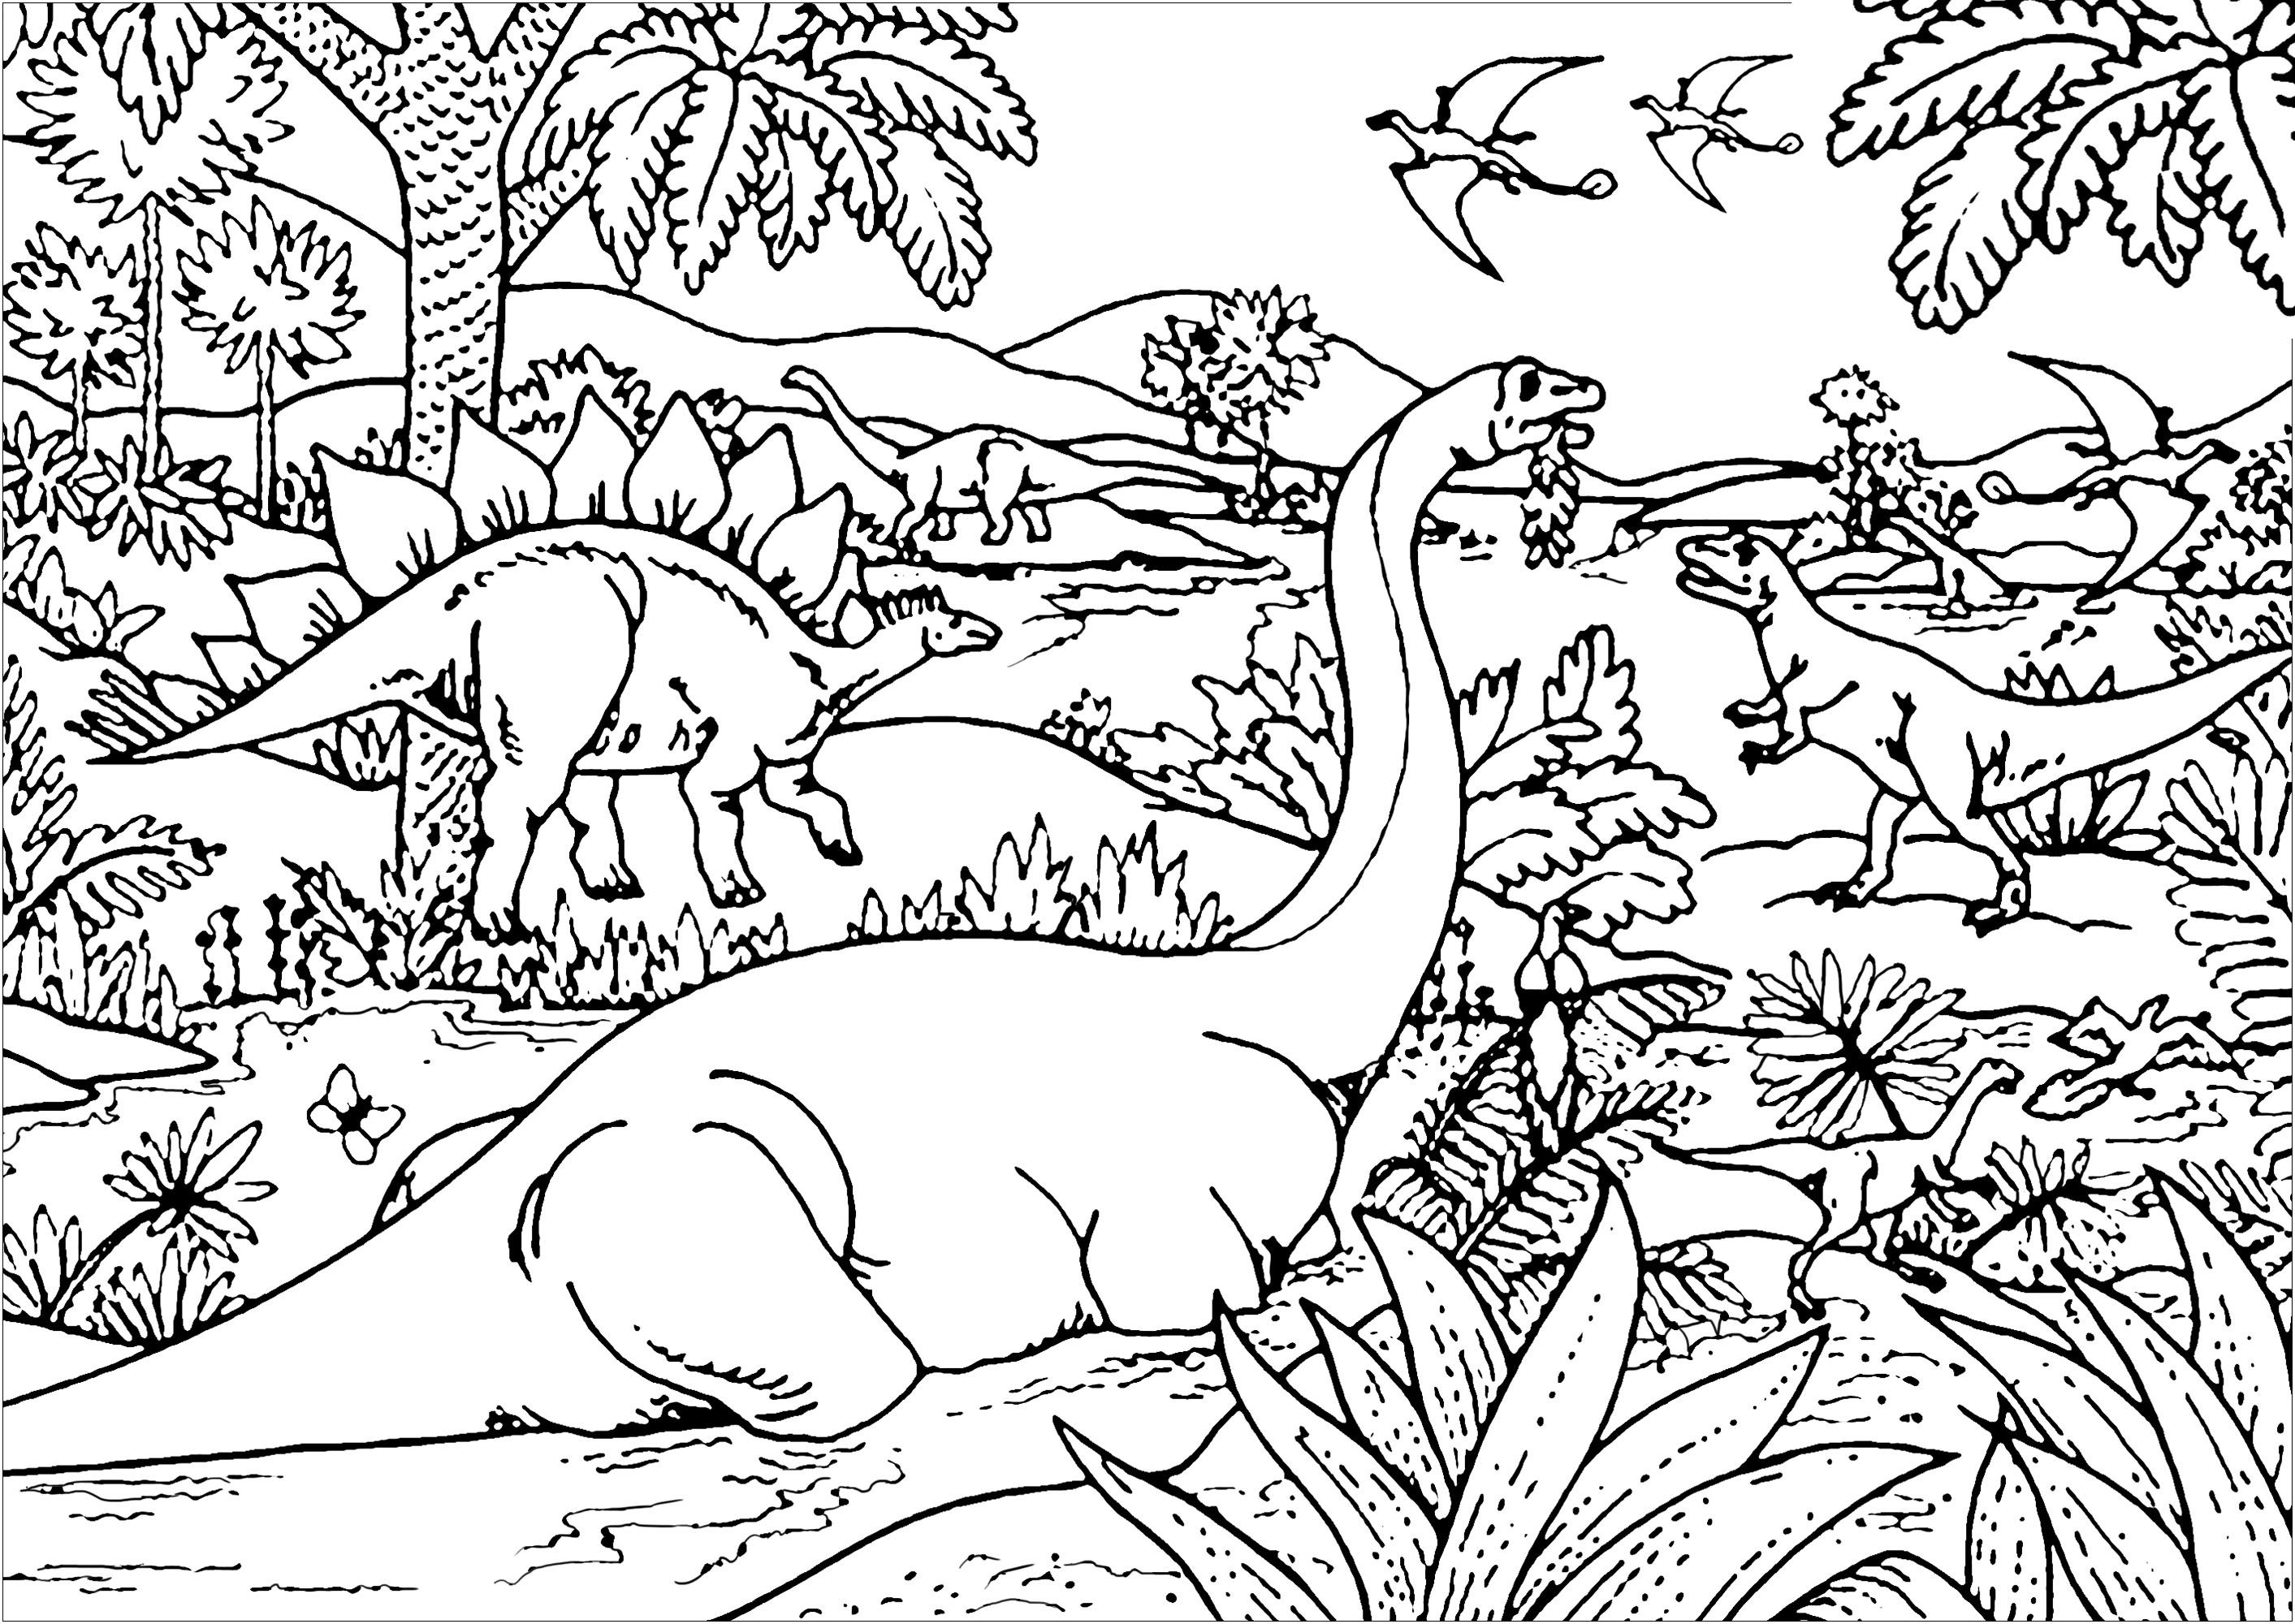 Color All There Different Types Of Dinosaurs Diplodocus Tyrannosaurus Stegosaurus Pterodac Dinosaur Coloring Pages Jungle Coloring Pages Dinosaur Coloring